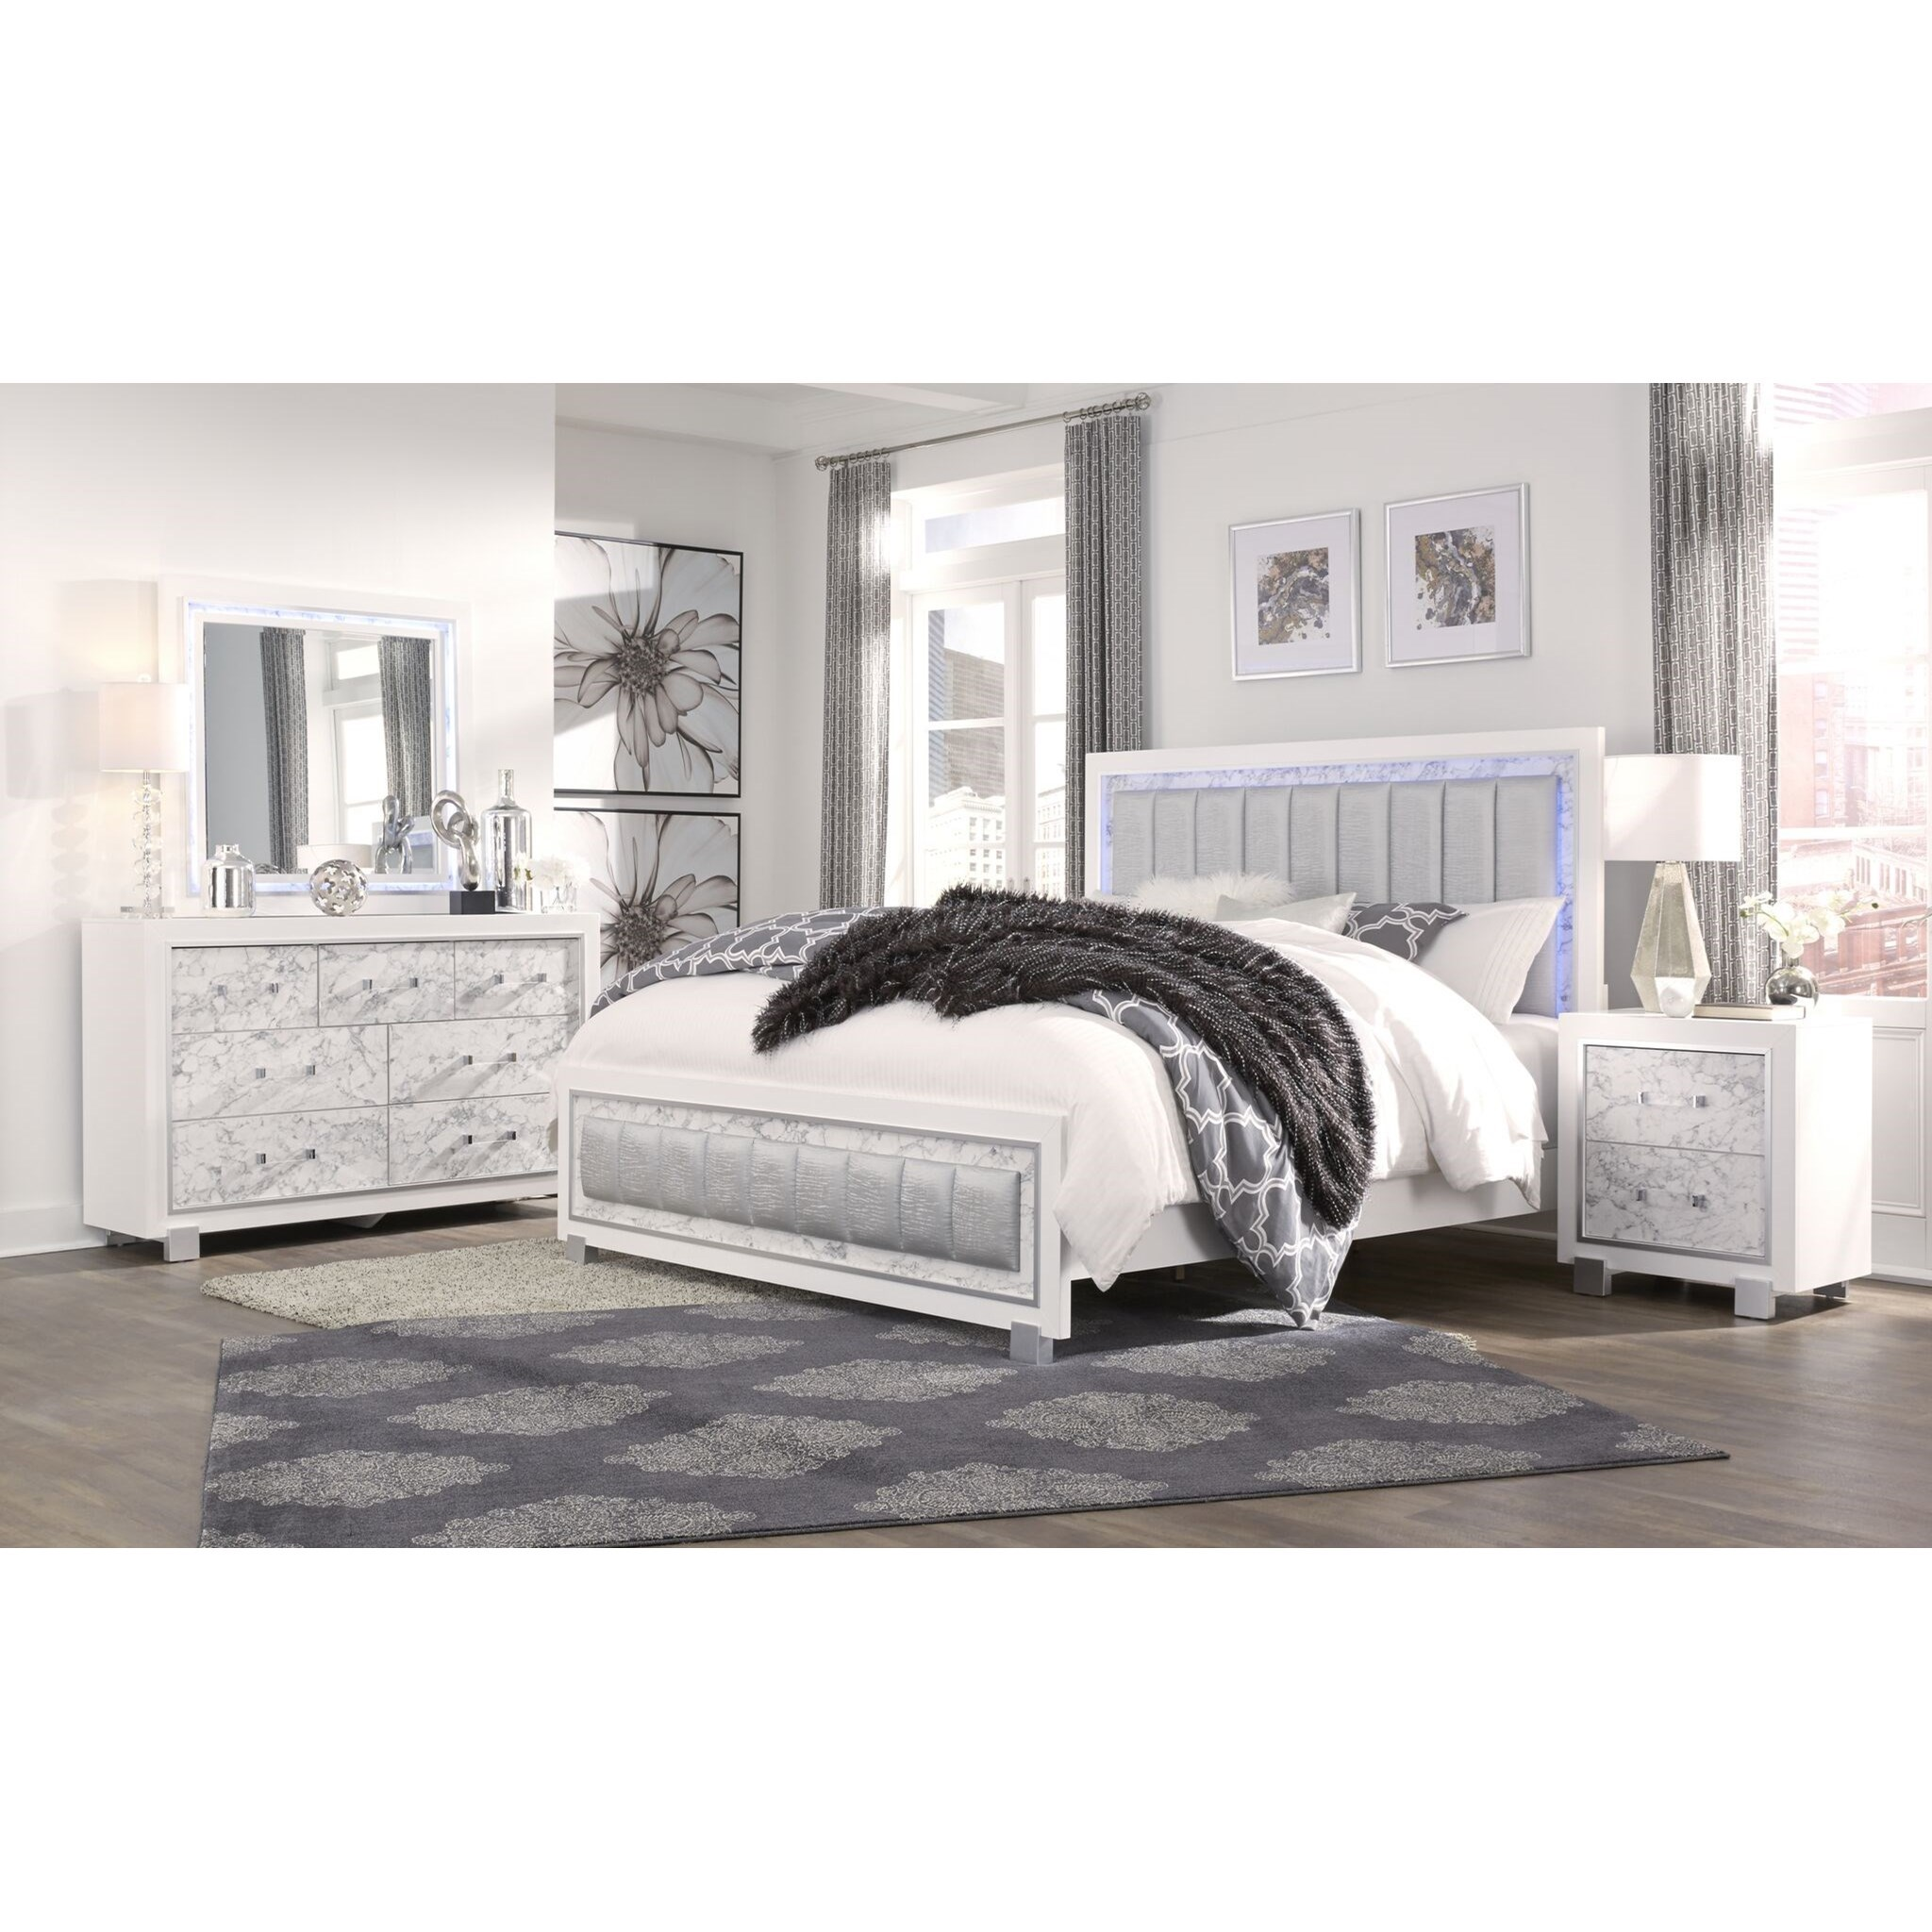 Santorini Queen Bedroom Group by Global Furniture at Nassau Furniture and Mattress